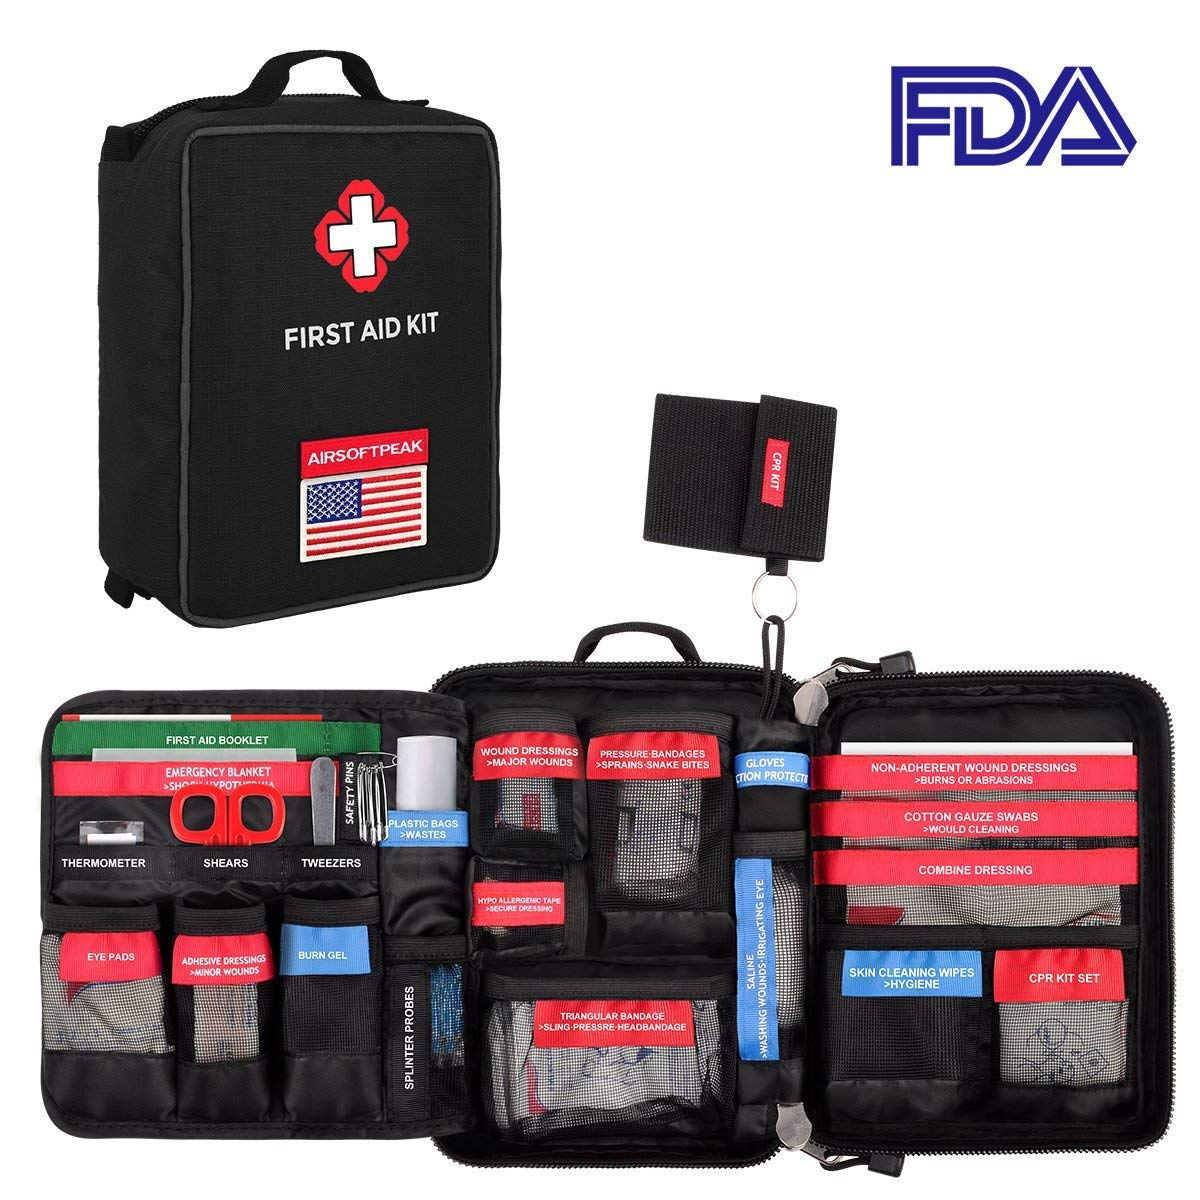 AIRSOFTPEAK First Aid Kit Labeled First Aid Essentials Kits 96 Pieces Waterproof Molle First Aid Bag Reflective Strip for Emergency at Home, Cars, Survival, Hiking, Travel, Black